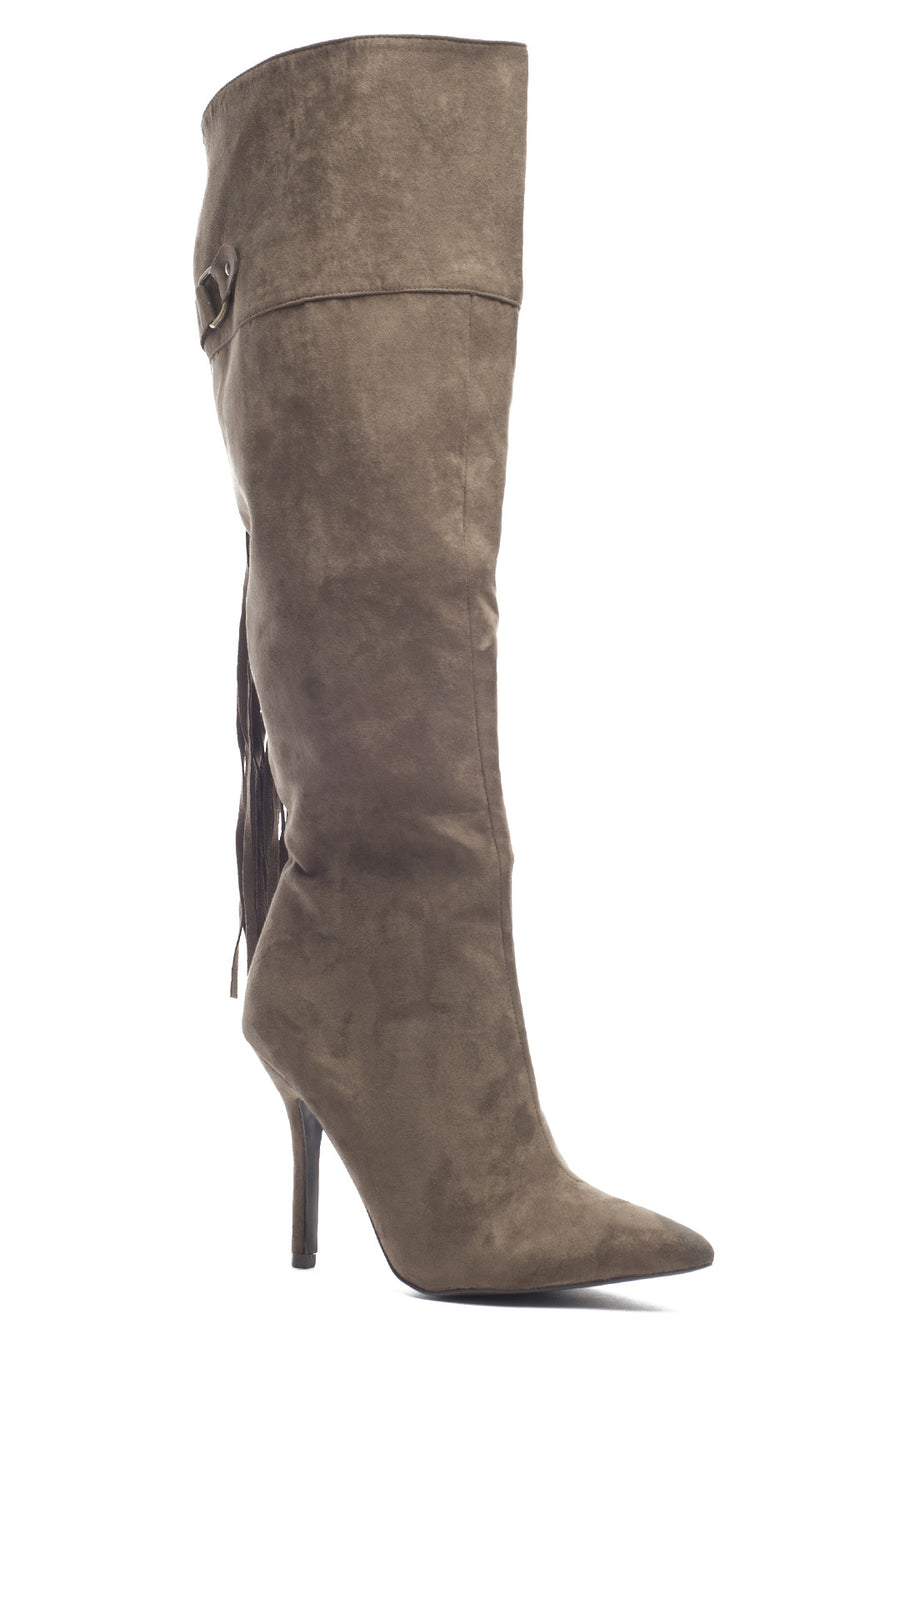 Knee High Tassel Boot - Khaki